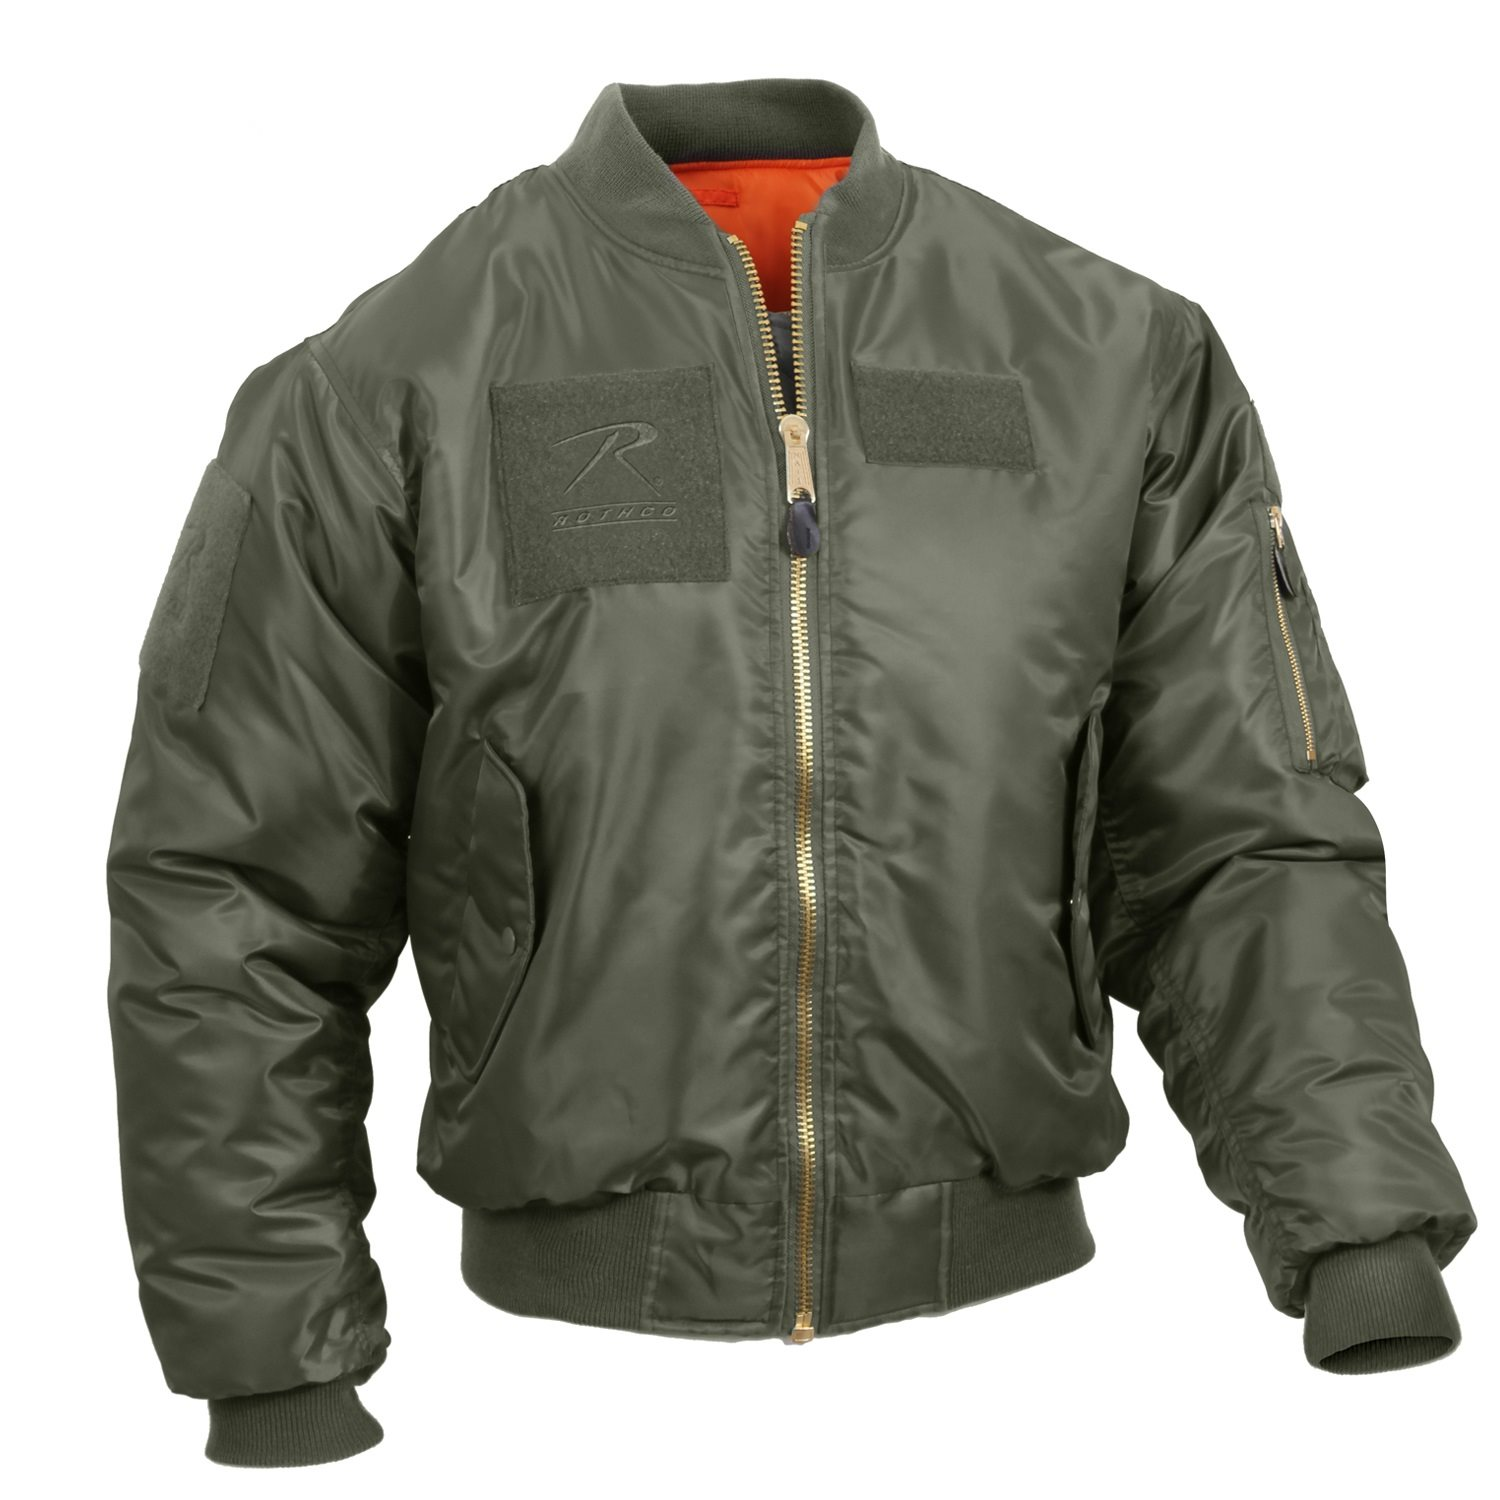 Jacket with patches MA1 FLIGHT SAGE GREEN ROTHCO 7240 L-11